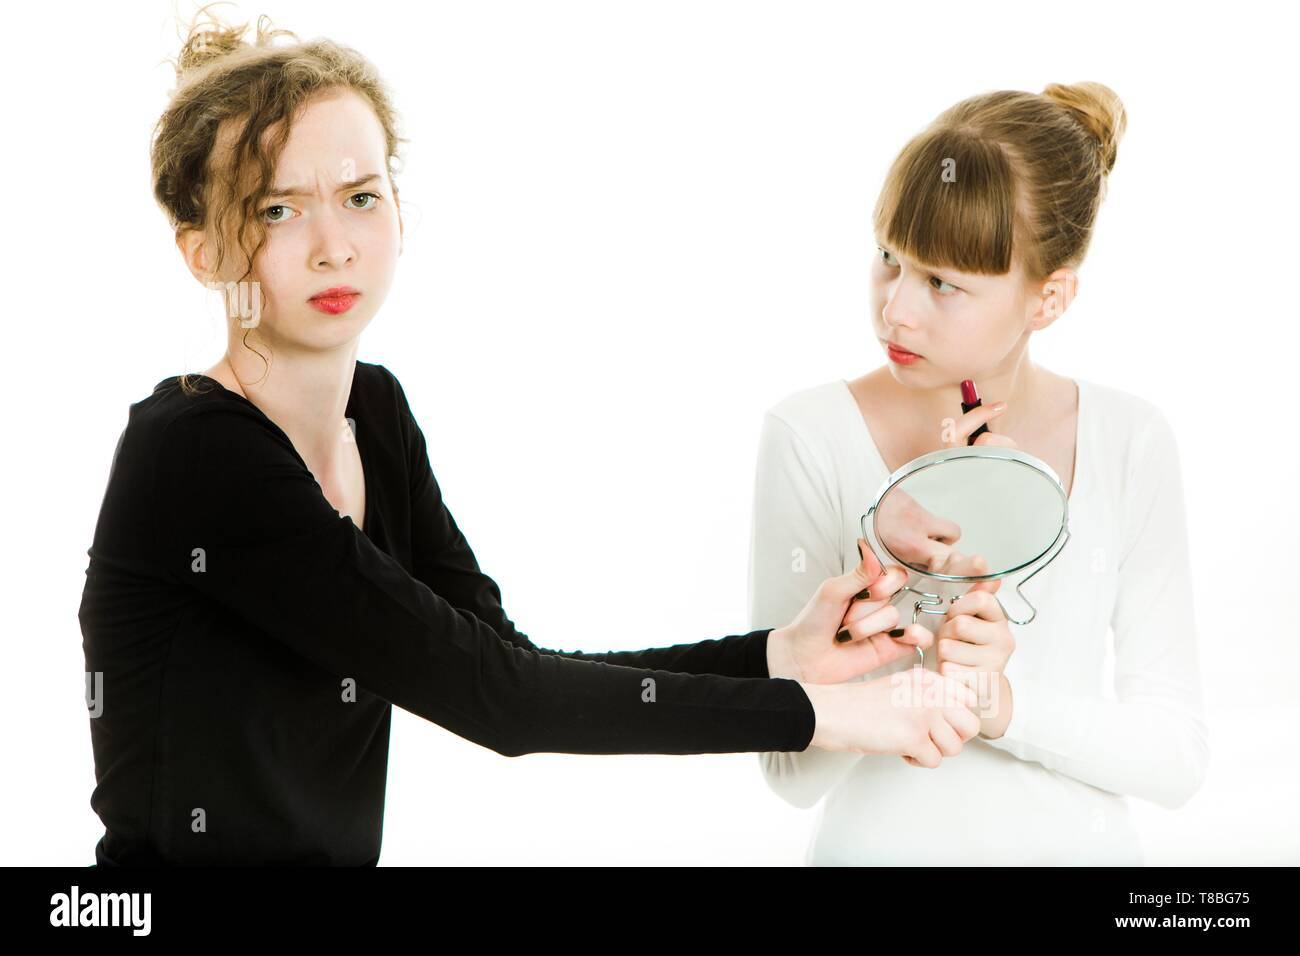 Two puberty girls in black and white dresses haggle to get a mirror to make a make up - sister rivalry - white background - Stock Image